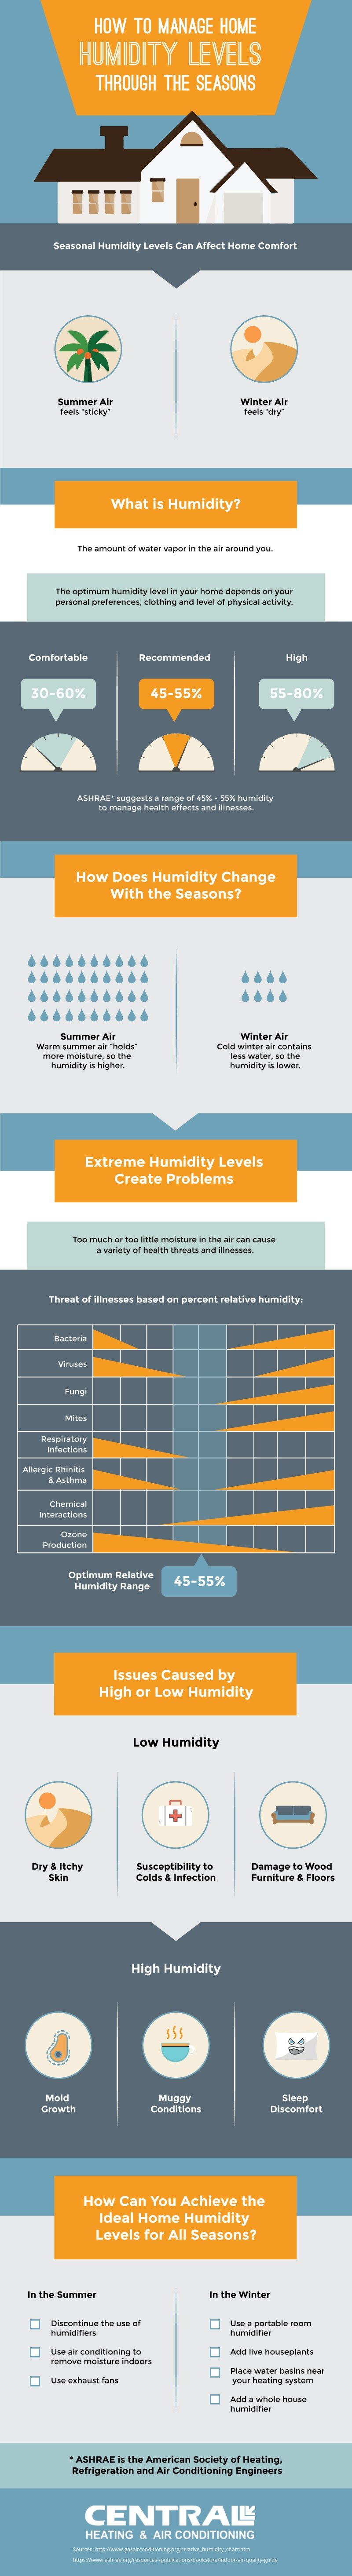 how to manage humidity levels through the seasons infographic. Black Bedroom Furniture Sets. Home Design Ideas